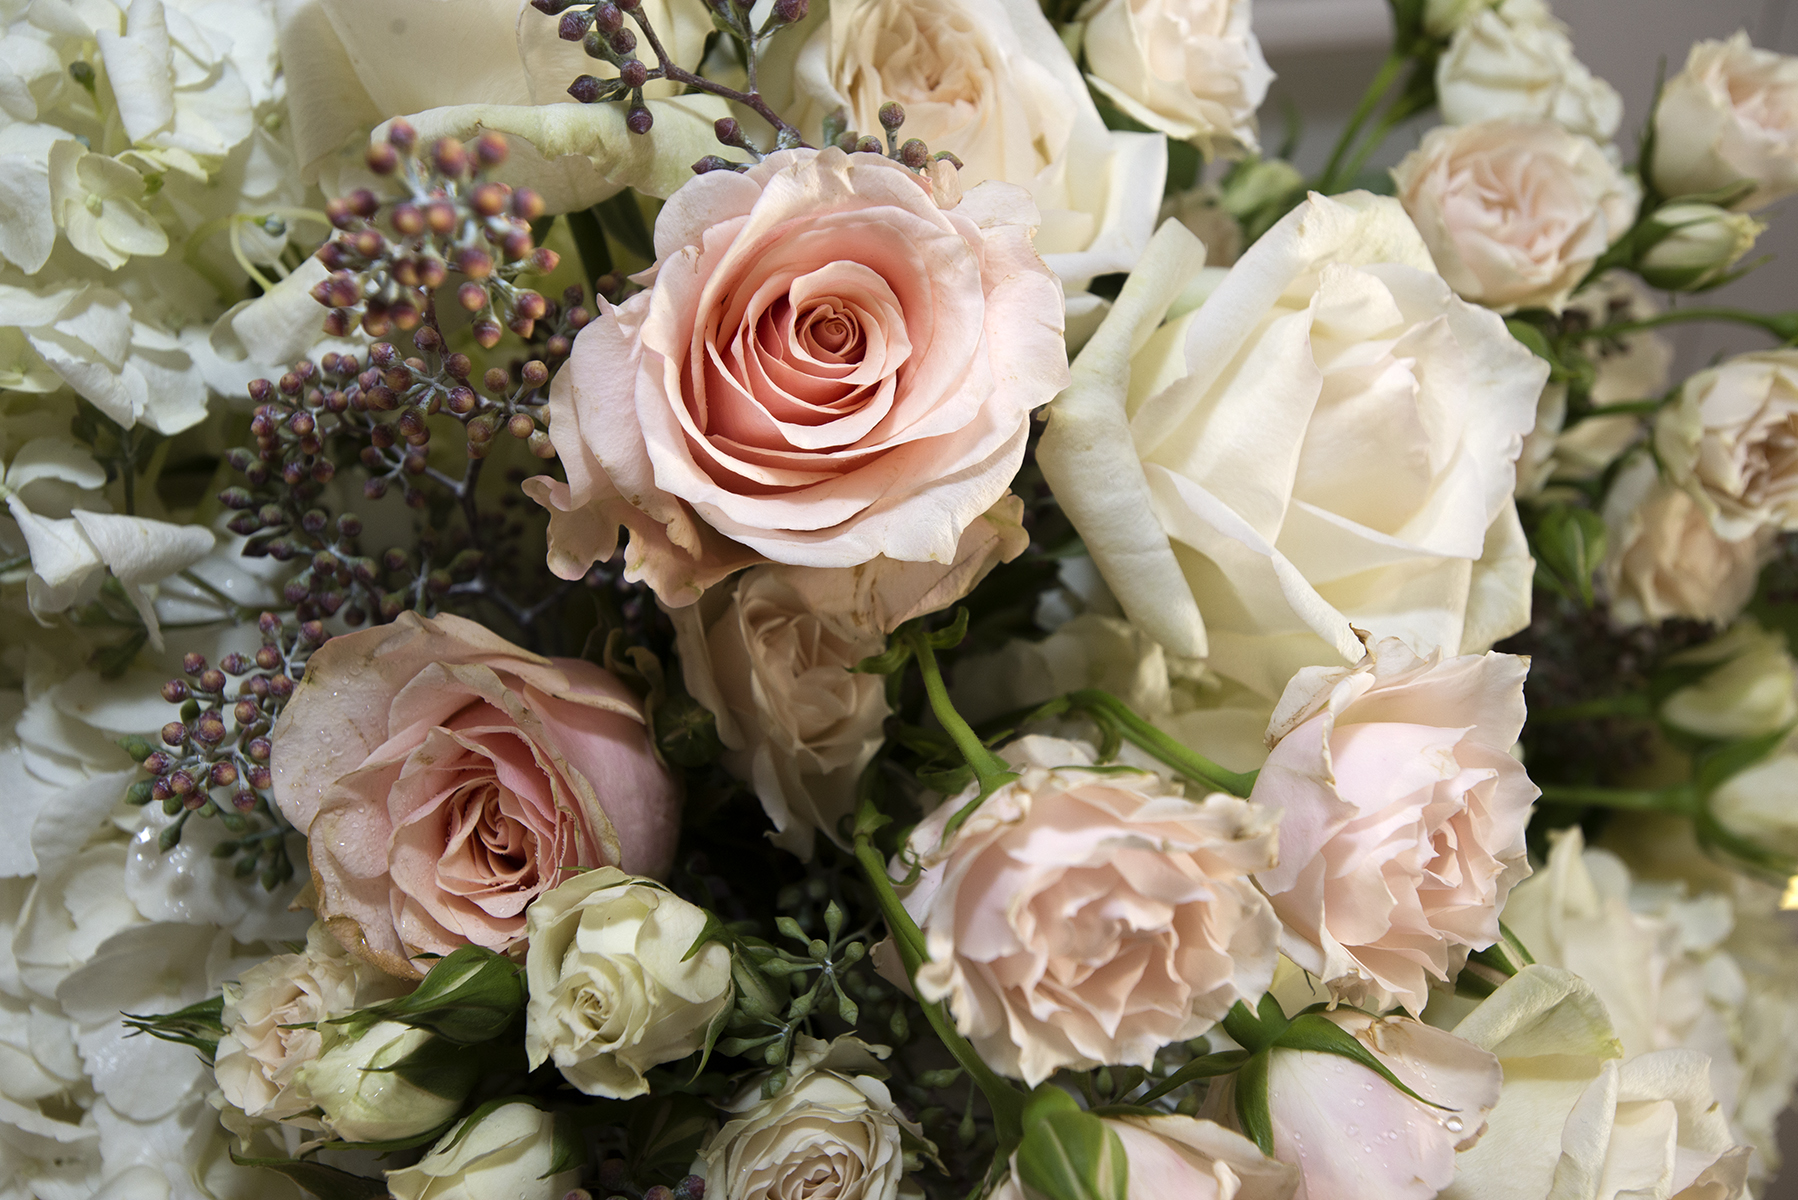 The flowers at Connie and Peter's wedding were stunning.